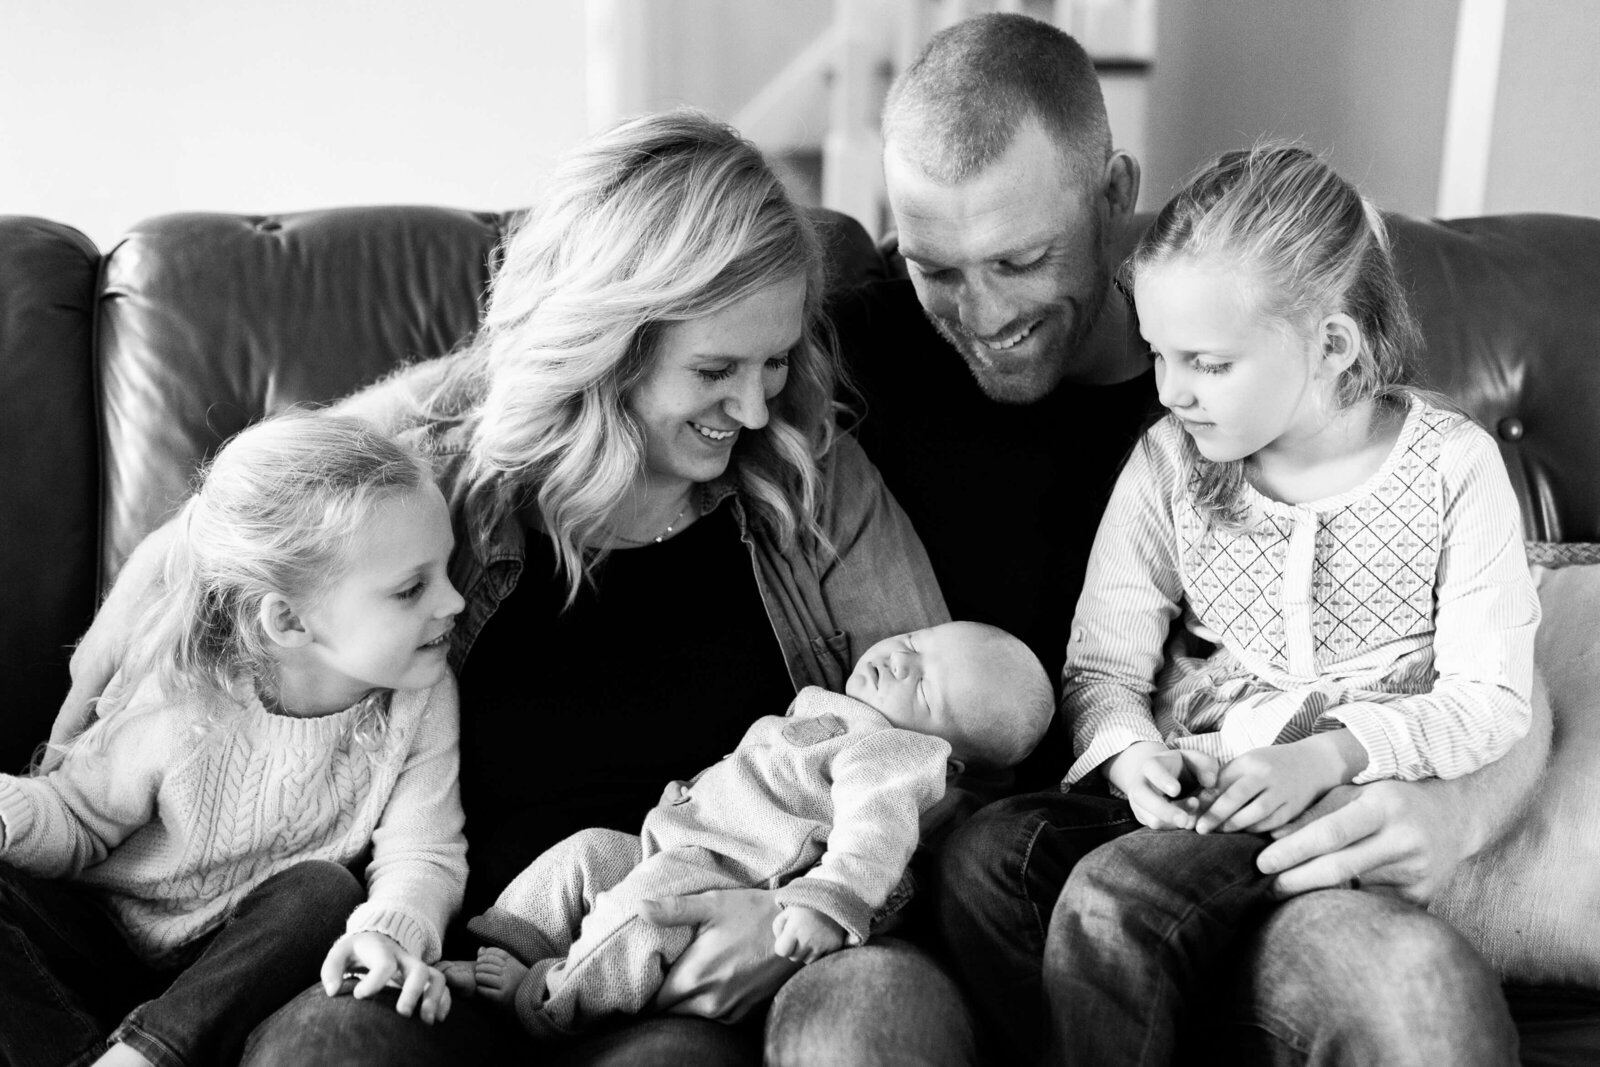 Hoover Family-Abigail Edmons Photography-Fort Wayne Indiana-2